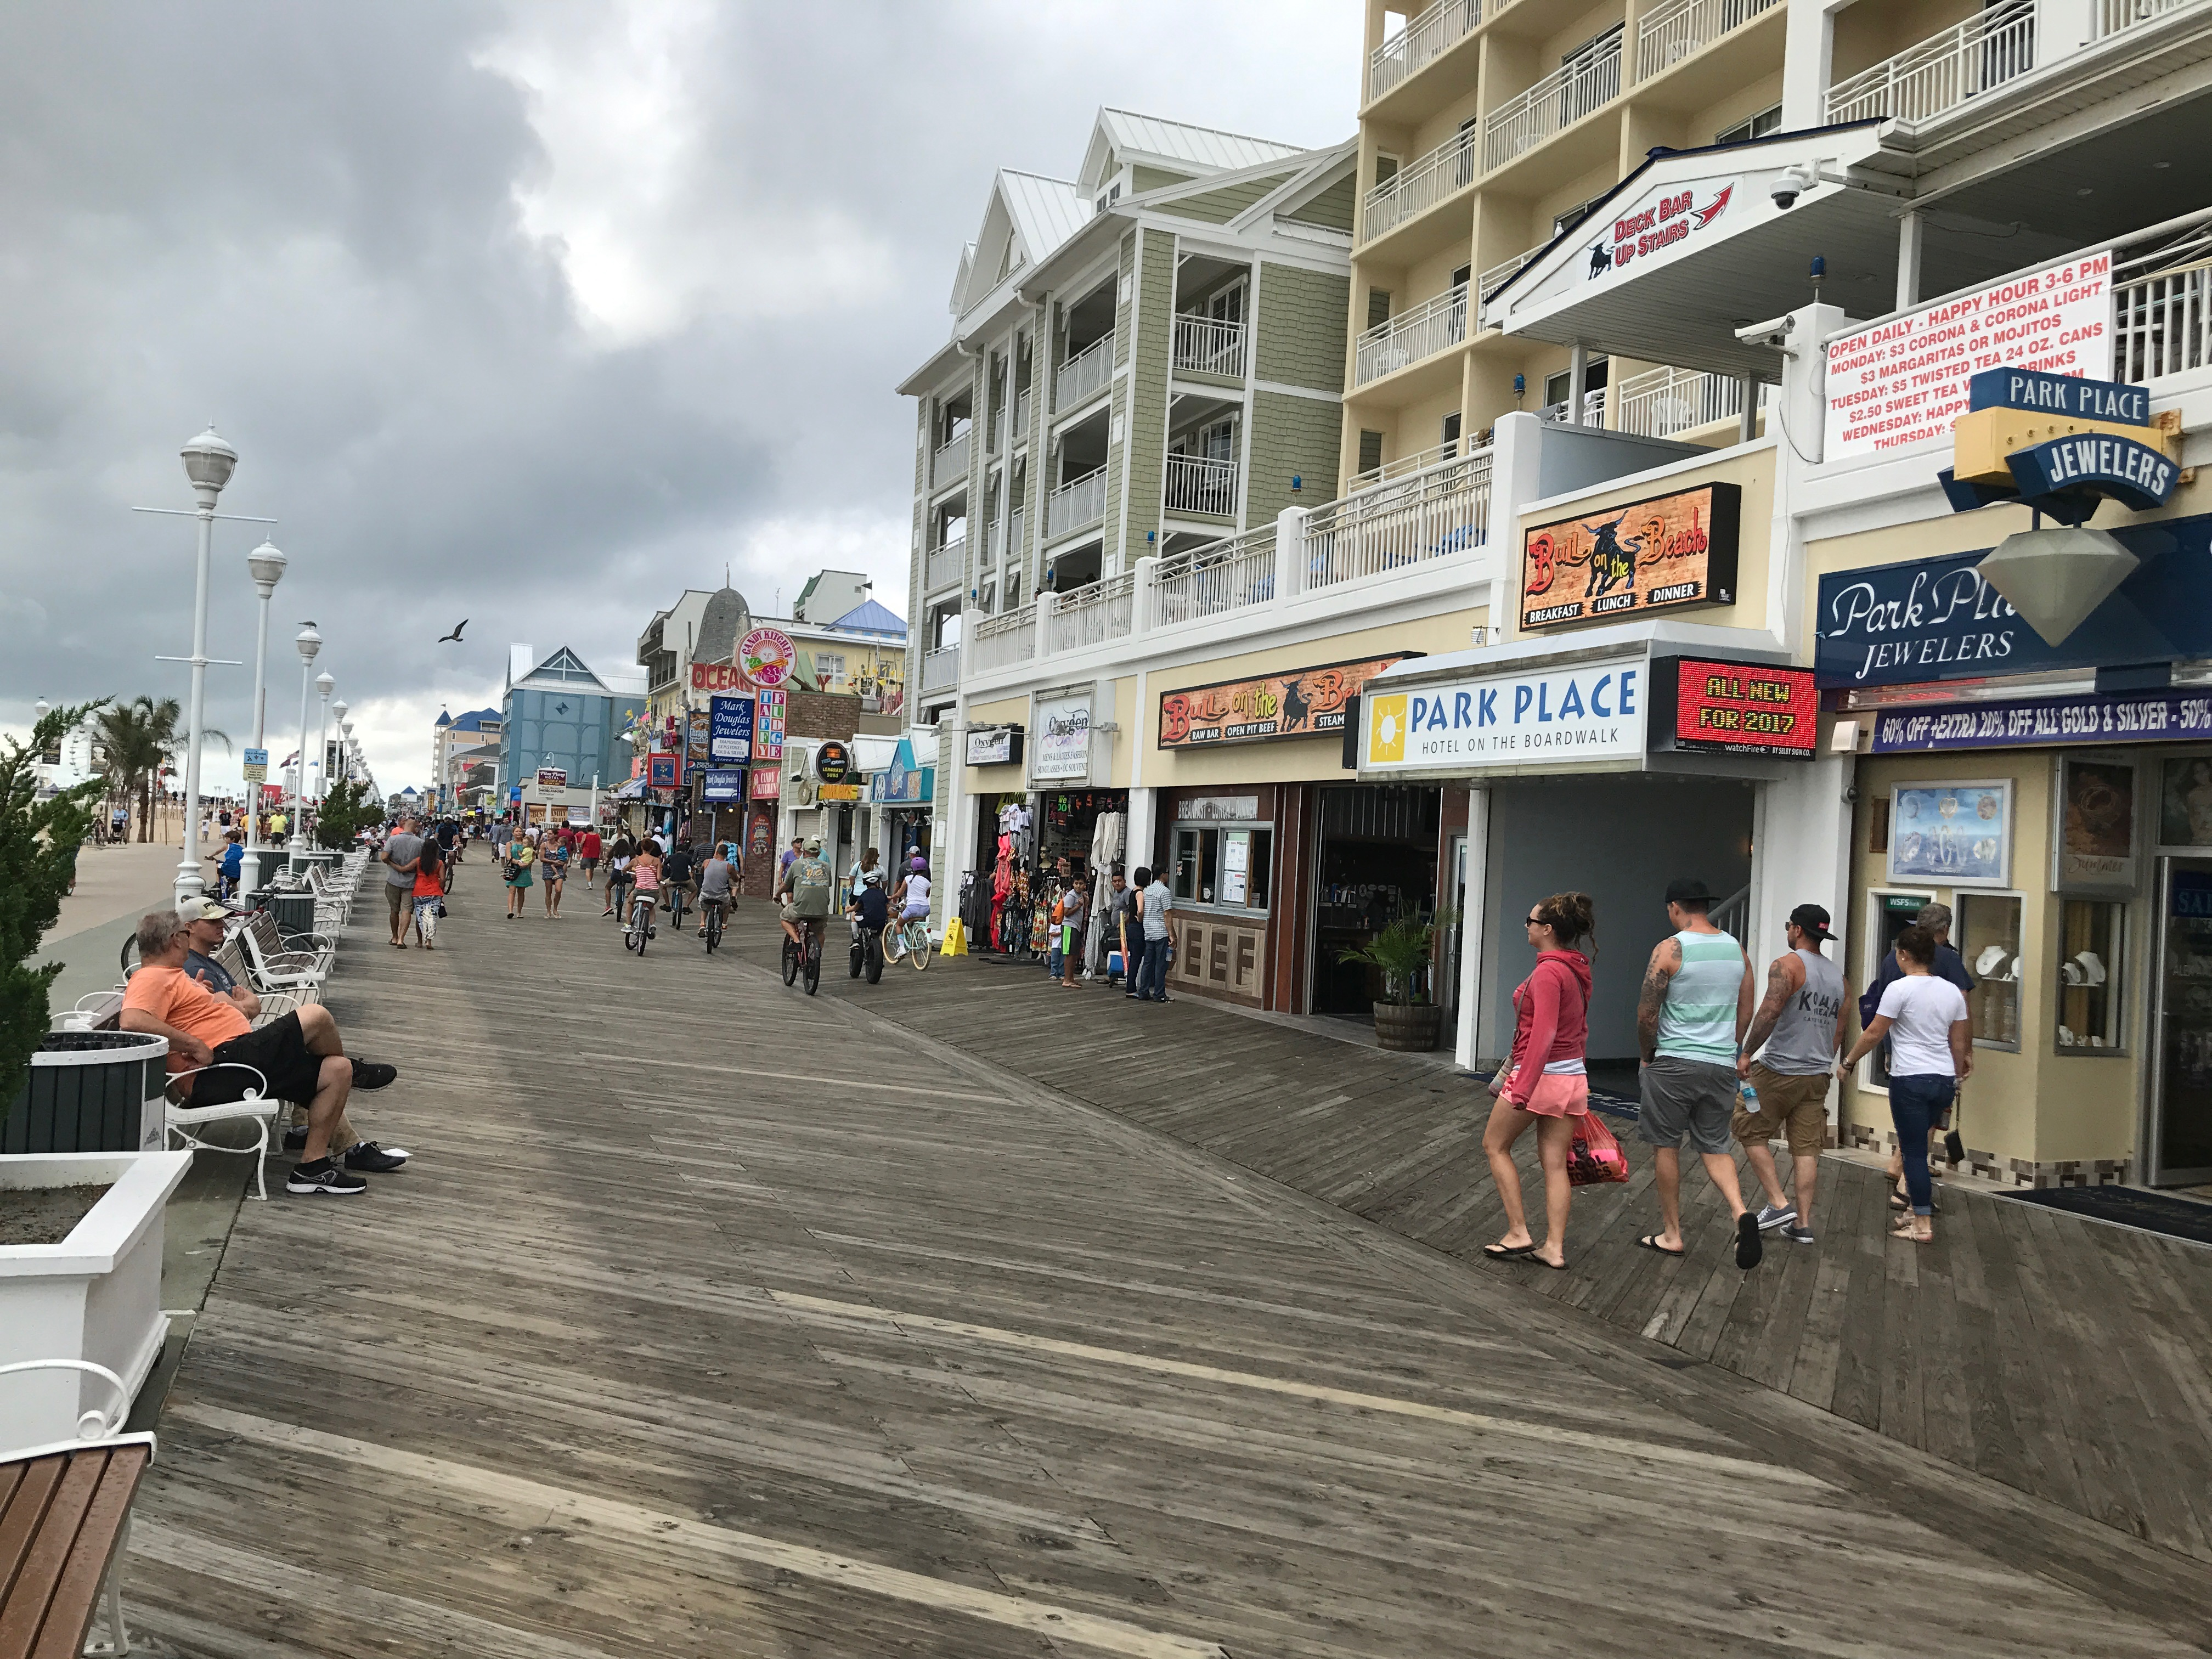 Crowds walking along the boardwalk in Ocean City, Md. on Sunday, September 3, 2017. Local businesses may lose much of their seasonal workforce if the Trump administration cancels the J-1 visa program. (Chris Miller/Capital News Service)